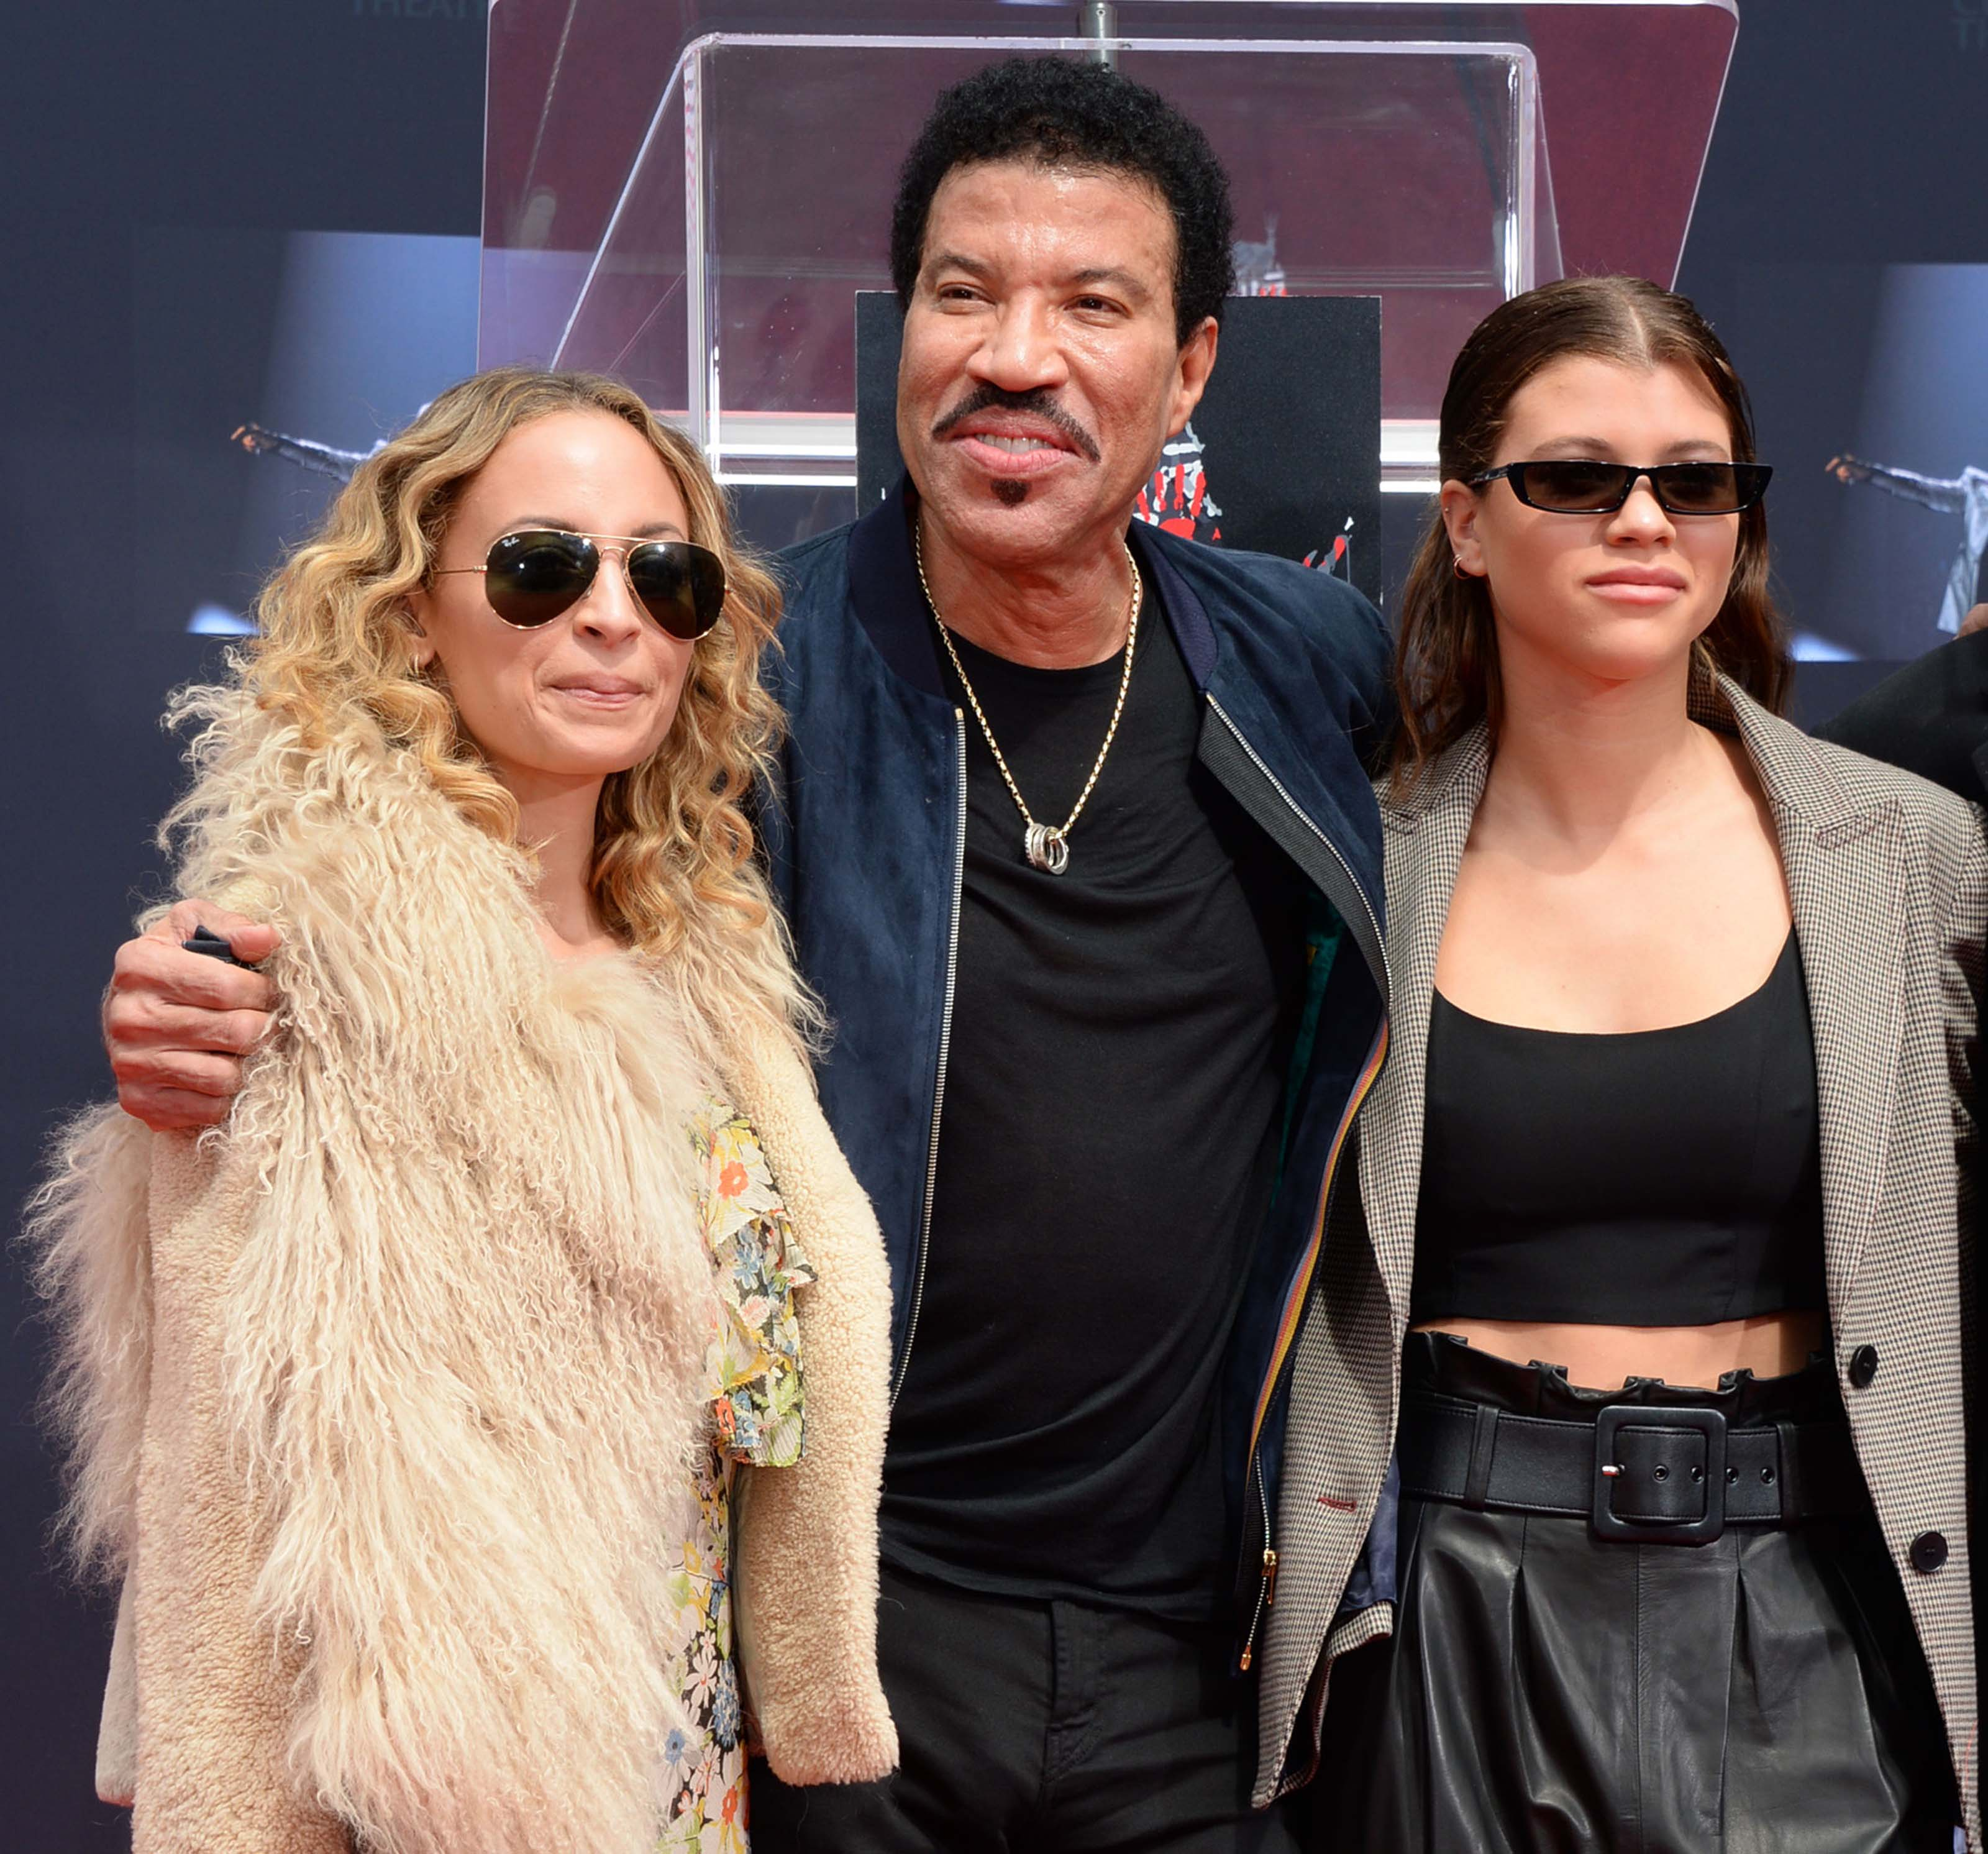 Sofia Richie attends Lionel Richie's Hand and Footprint Ceremony